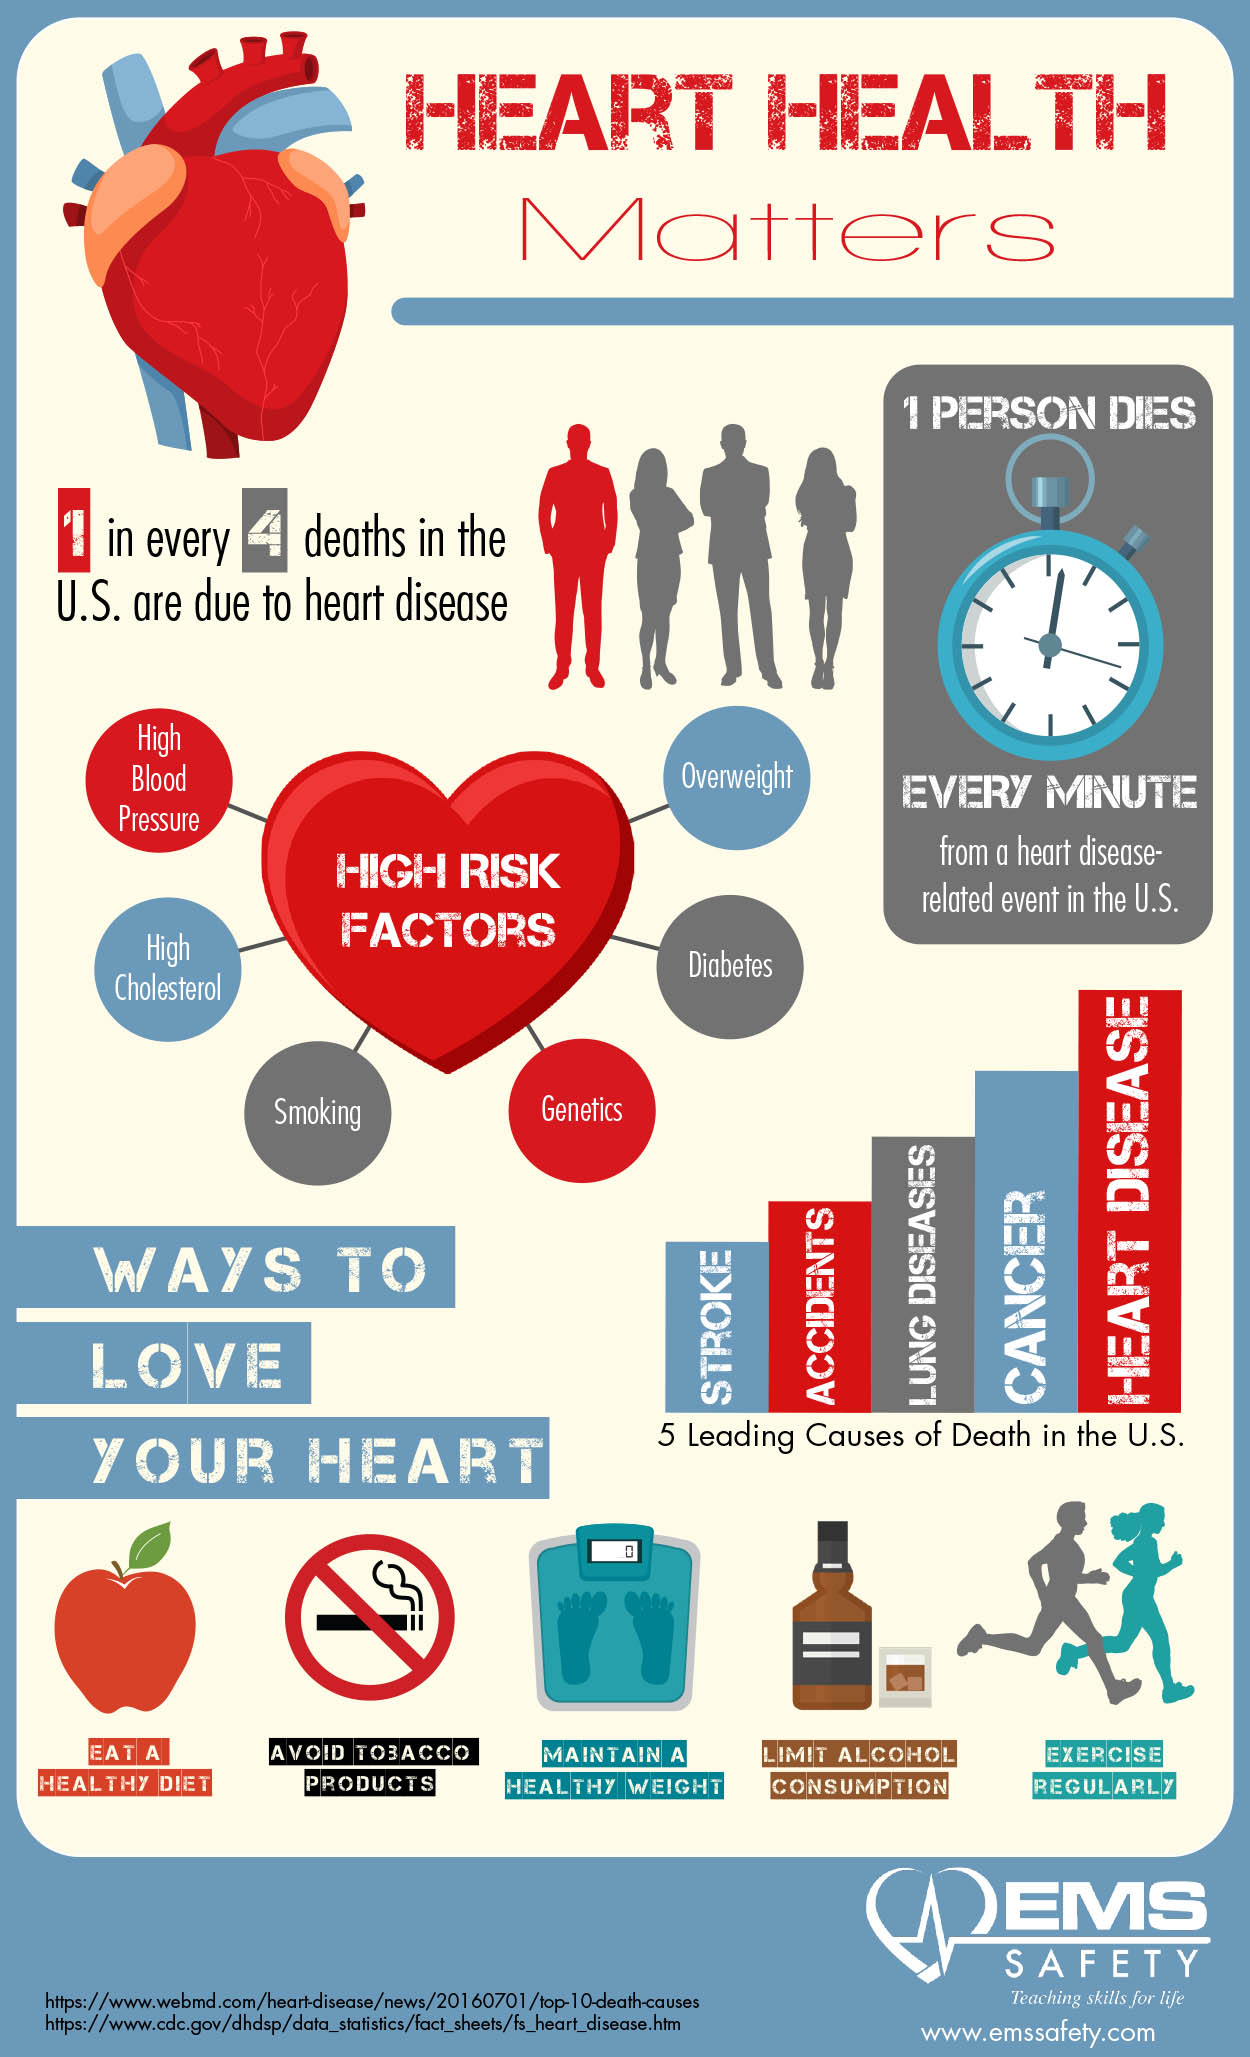 Hearth Health Matters Infographic